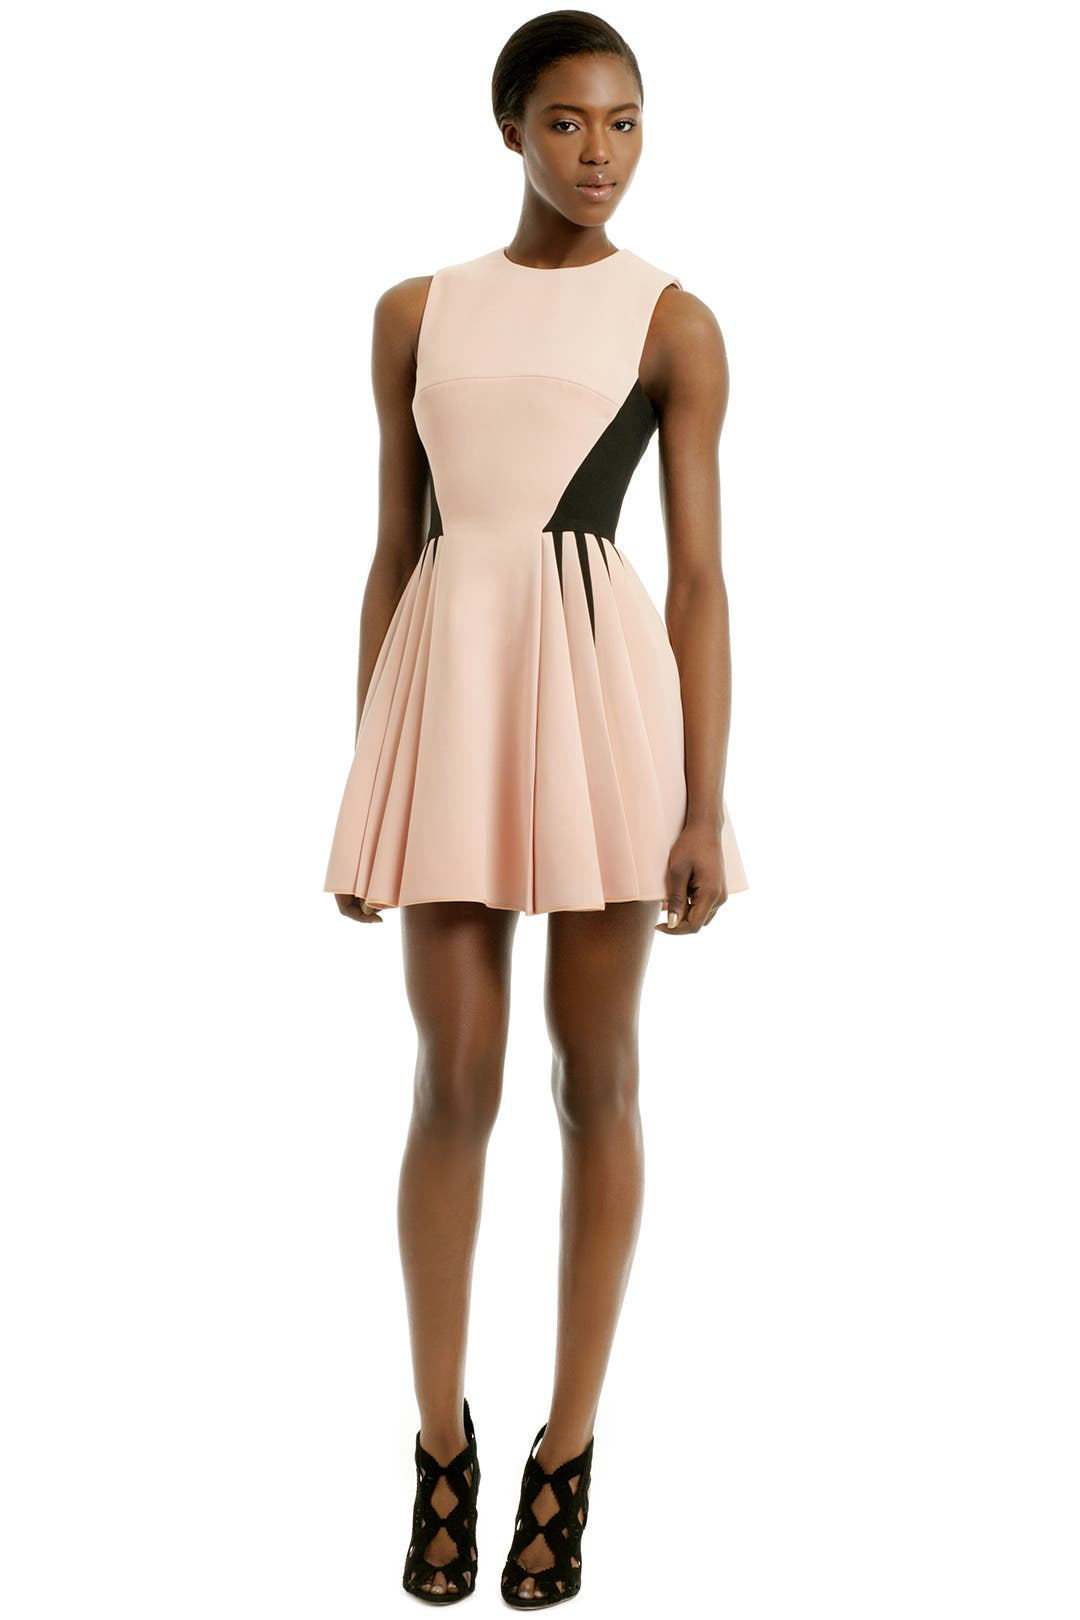 Blush Vanguard Dress by David Koma